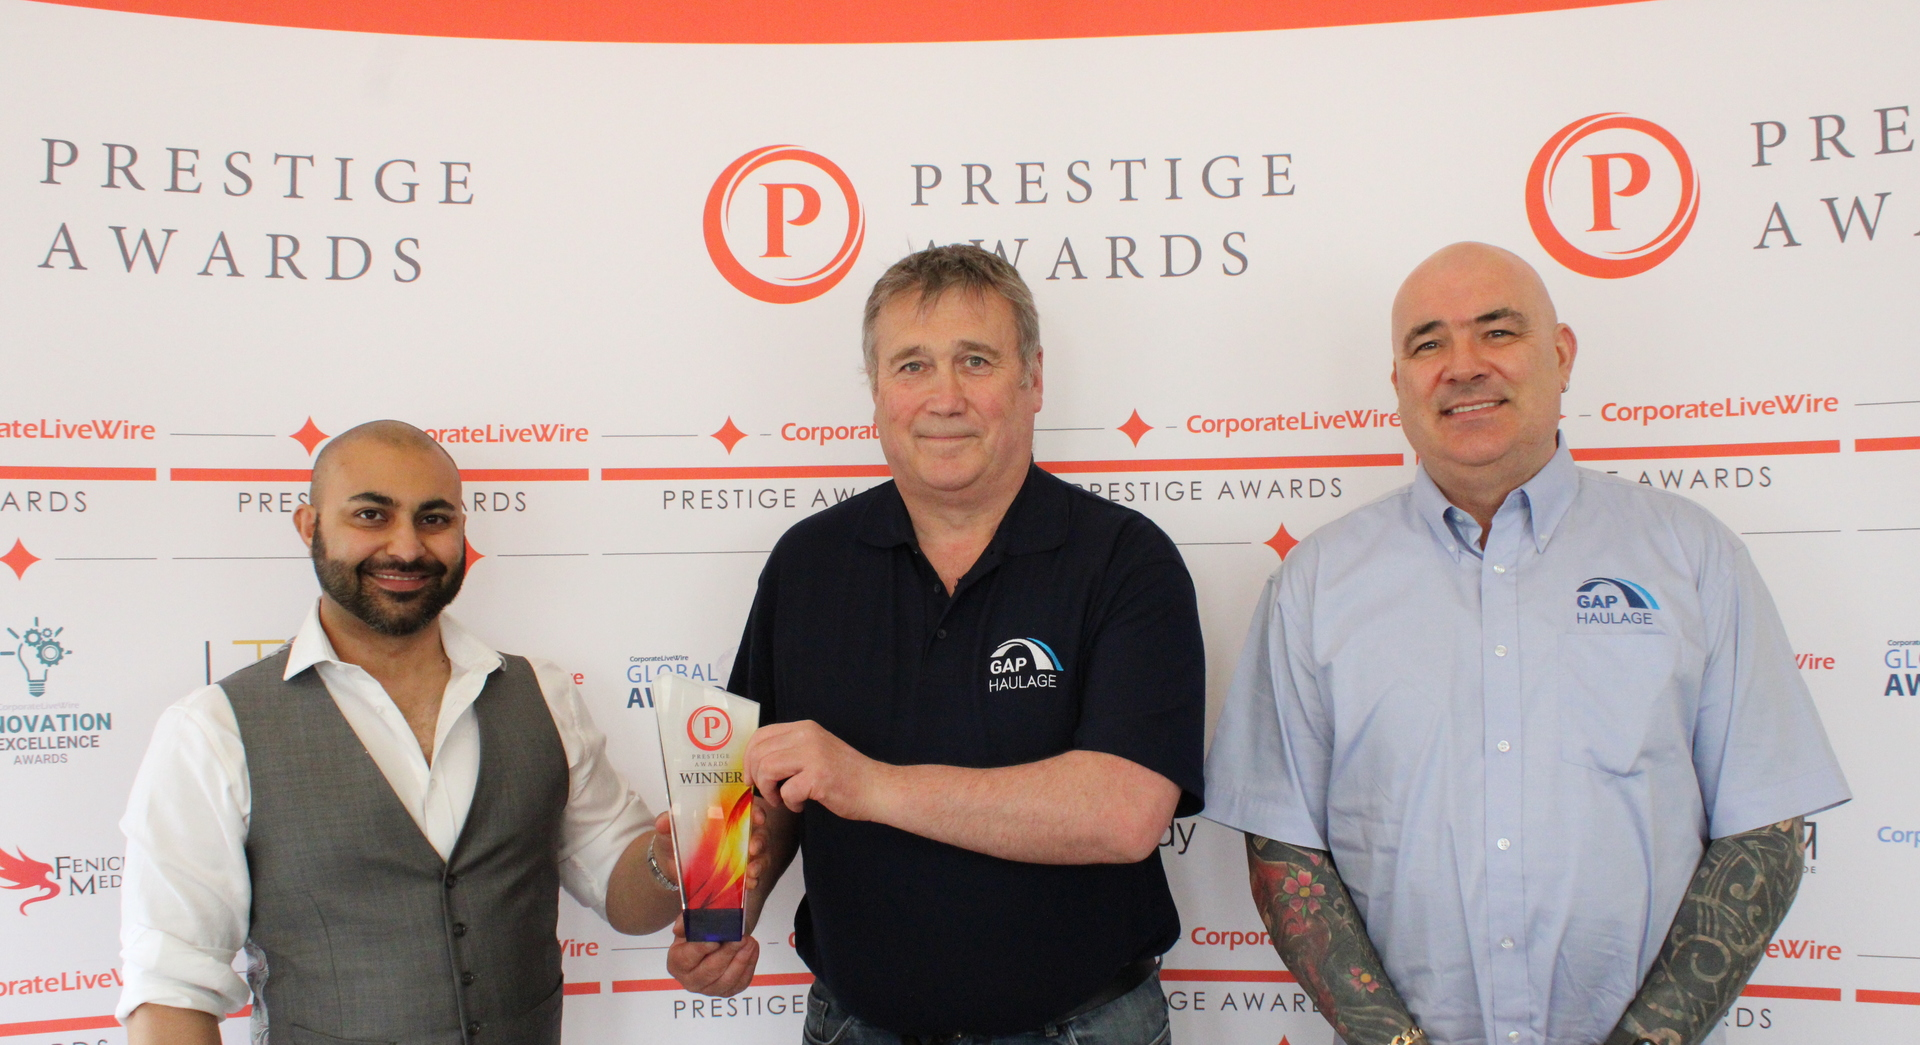 Prestige Awards North of England 2021 - Best in Haulage